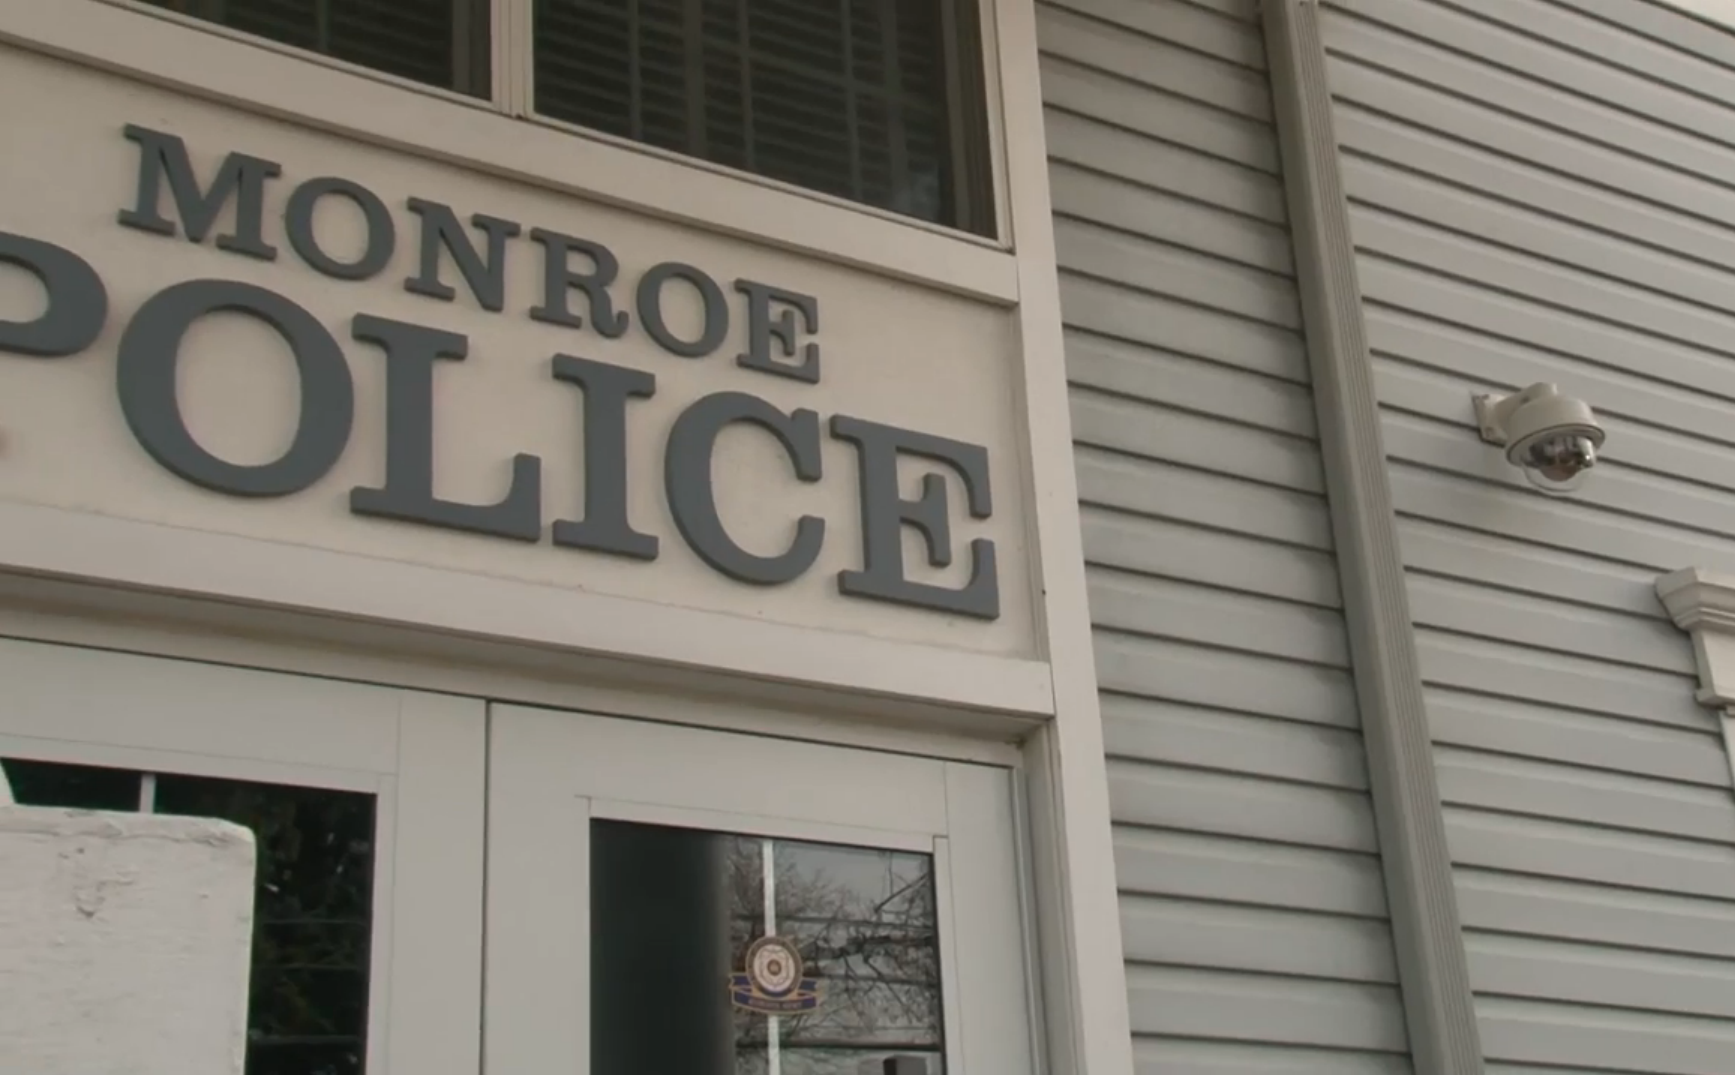 Police Department, Monroe, NY